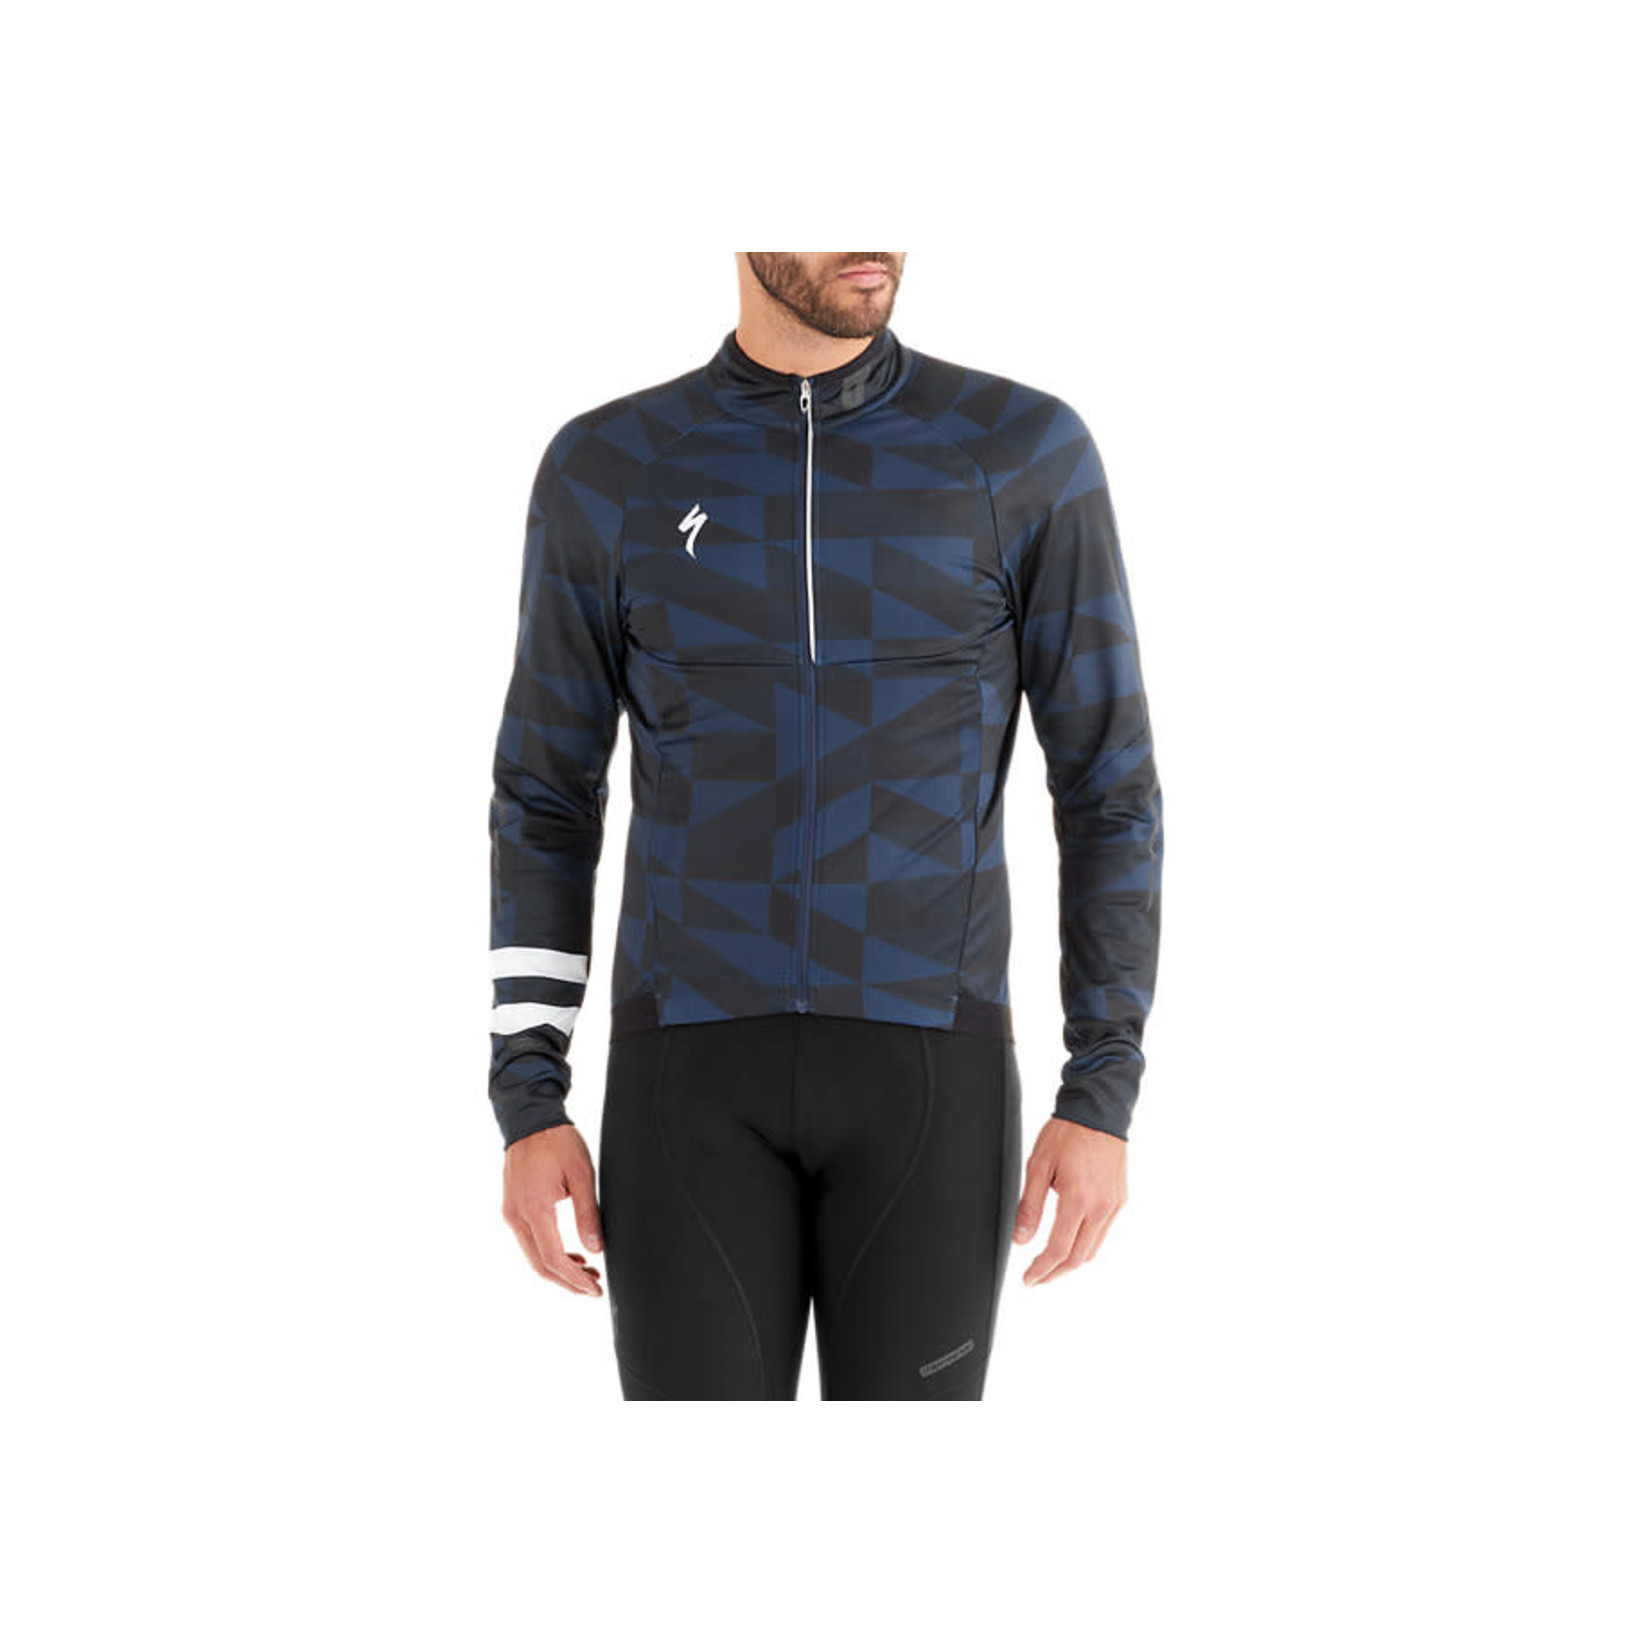 Specialized Specialized Therminal Jersey LS Men's